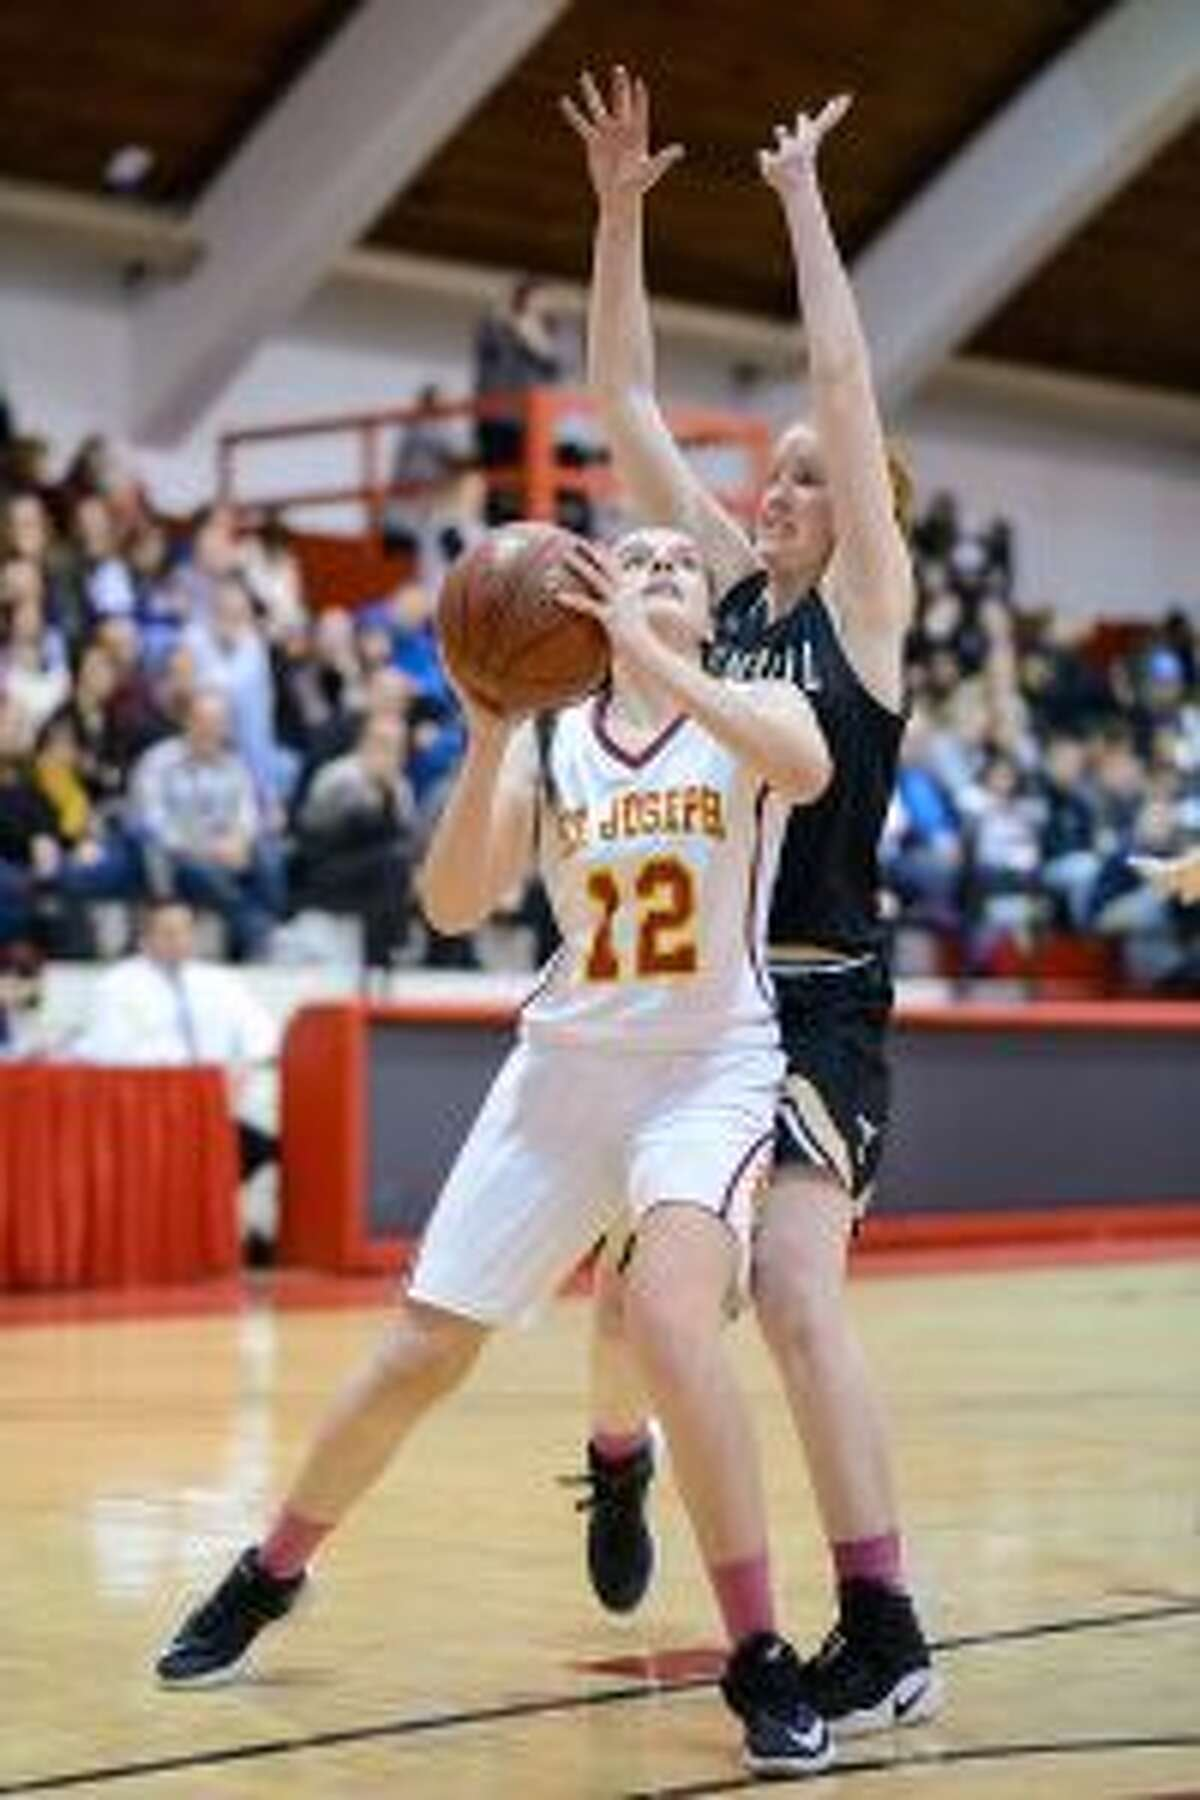 Megan Robertson had eight points in the win. - David G. Whitham photo